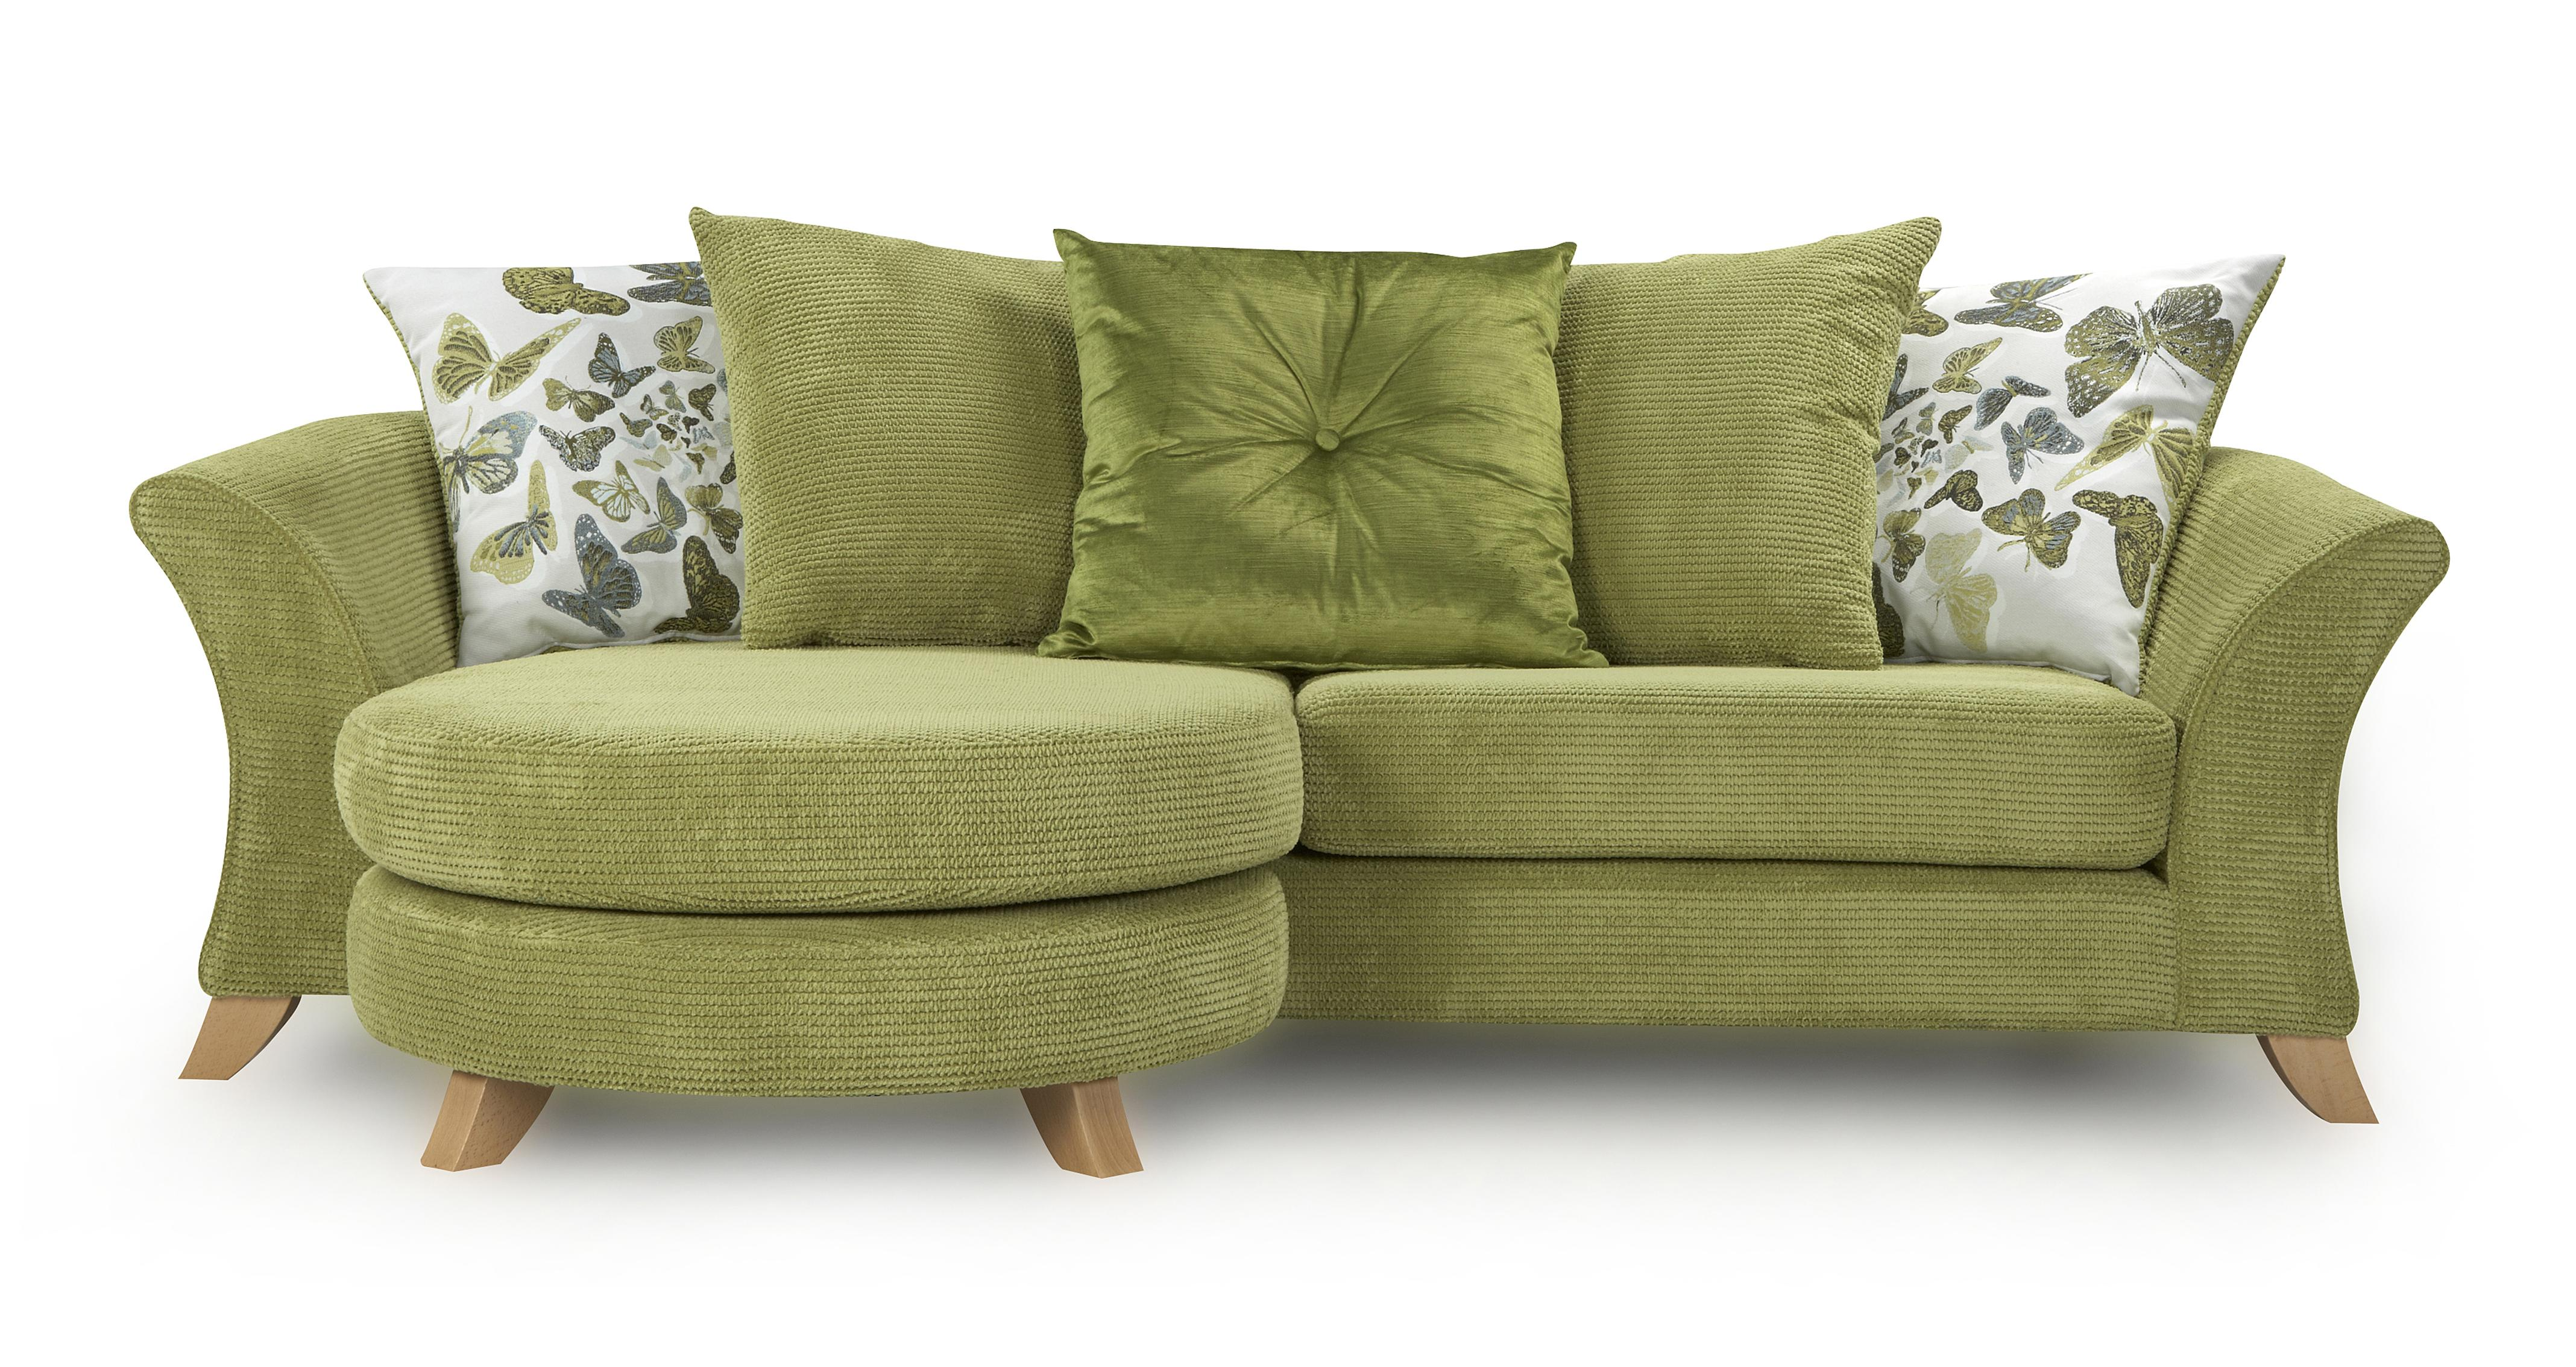 Sofas On Finance No Deposit Uk picture on 4 seater pillow back lounger sofa escape with Sofas On Finance No Deposit Uk, sofa 7b3ab9e2d4fa8d1d199173a29383b61e